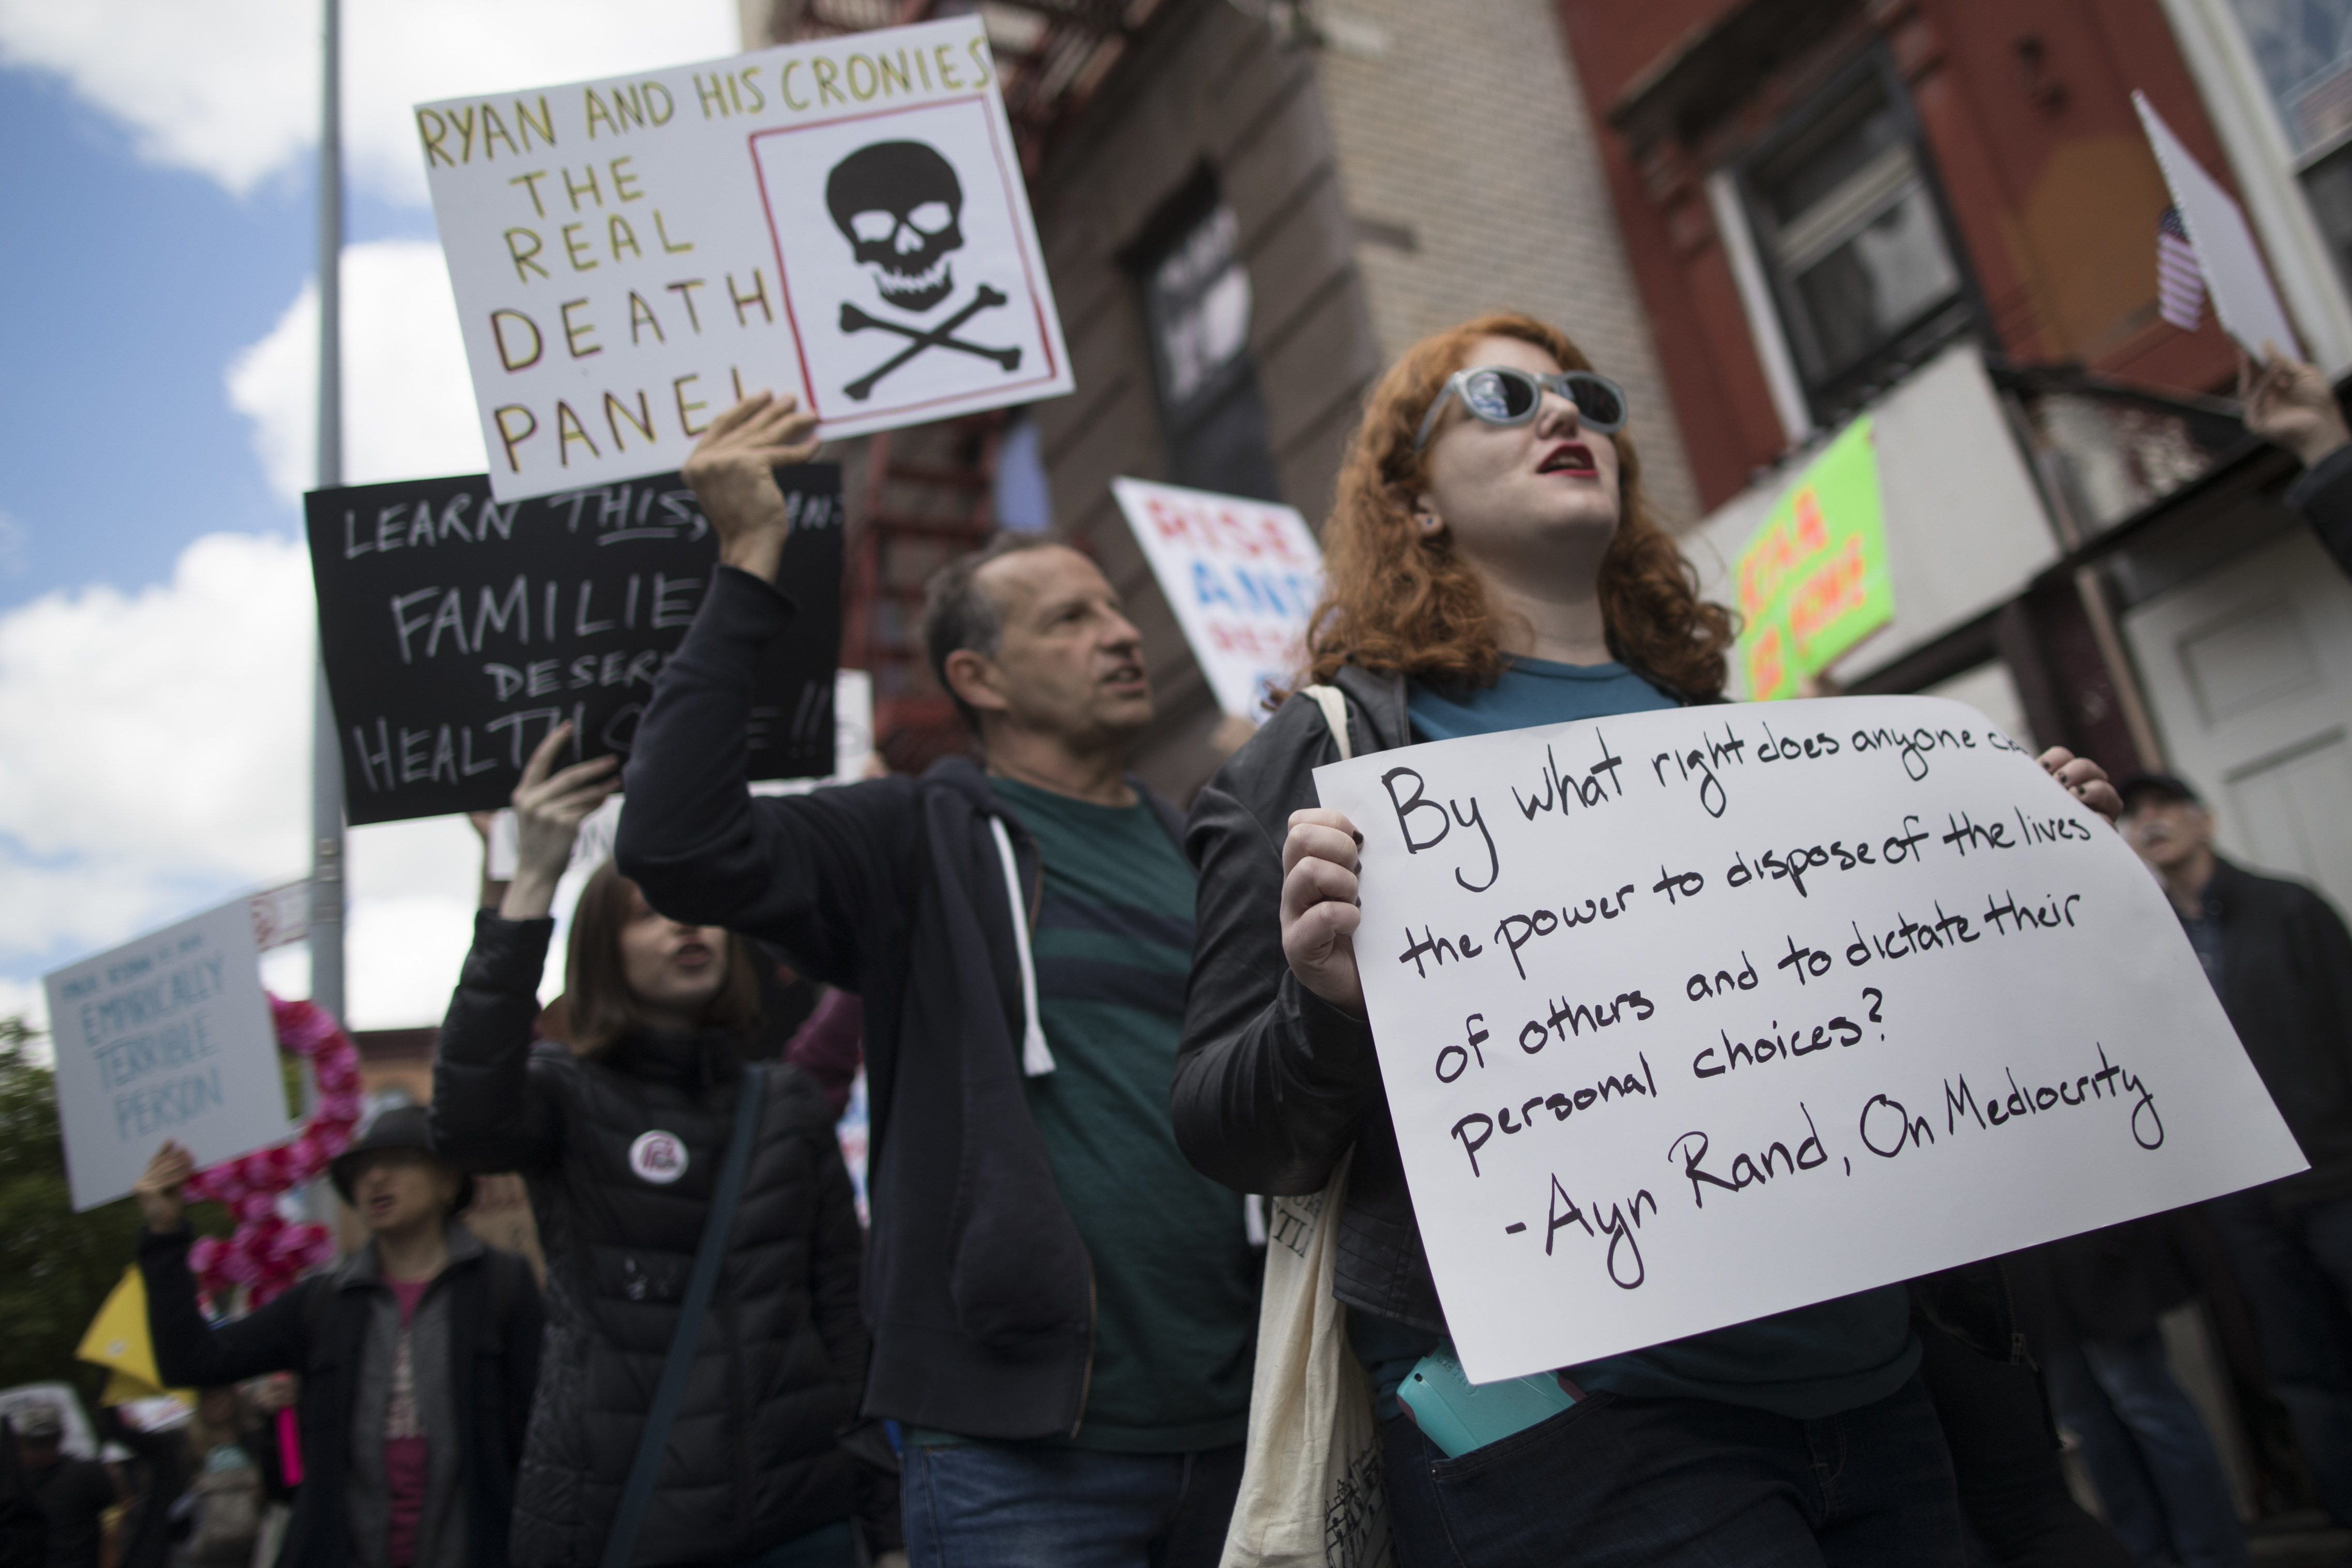 FILE - Protesters chant slogans outside the Success Academy charter school before House Speaker Paul Ryan, R-Wis., arrived, May 9, 2017, in the Harlem neighborhood of New York. Ryan was visiting the school, which is run by an advocate who was conside...